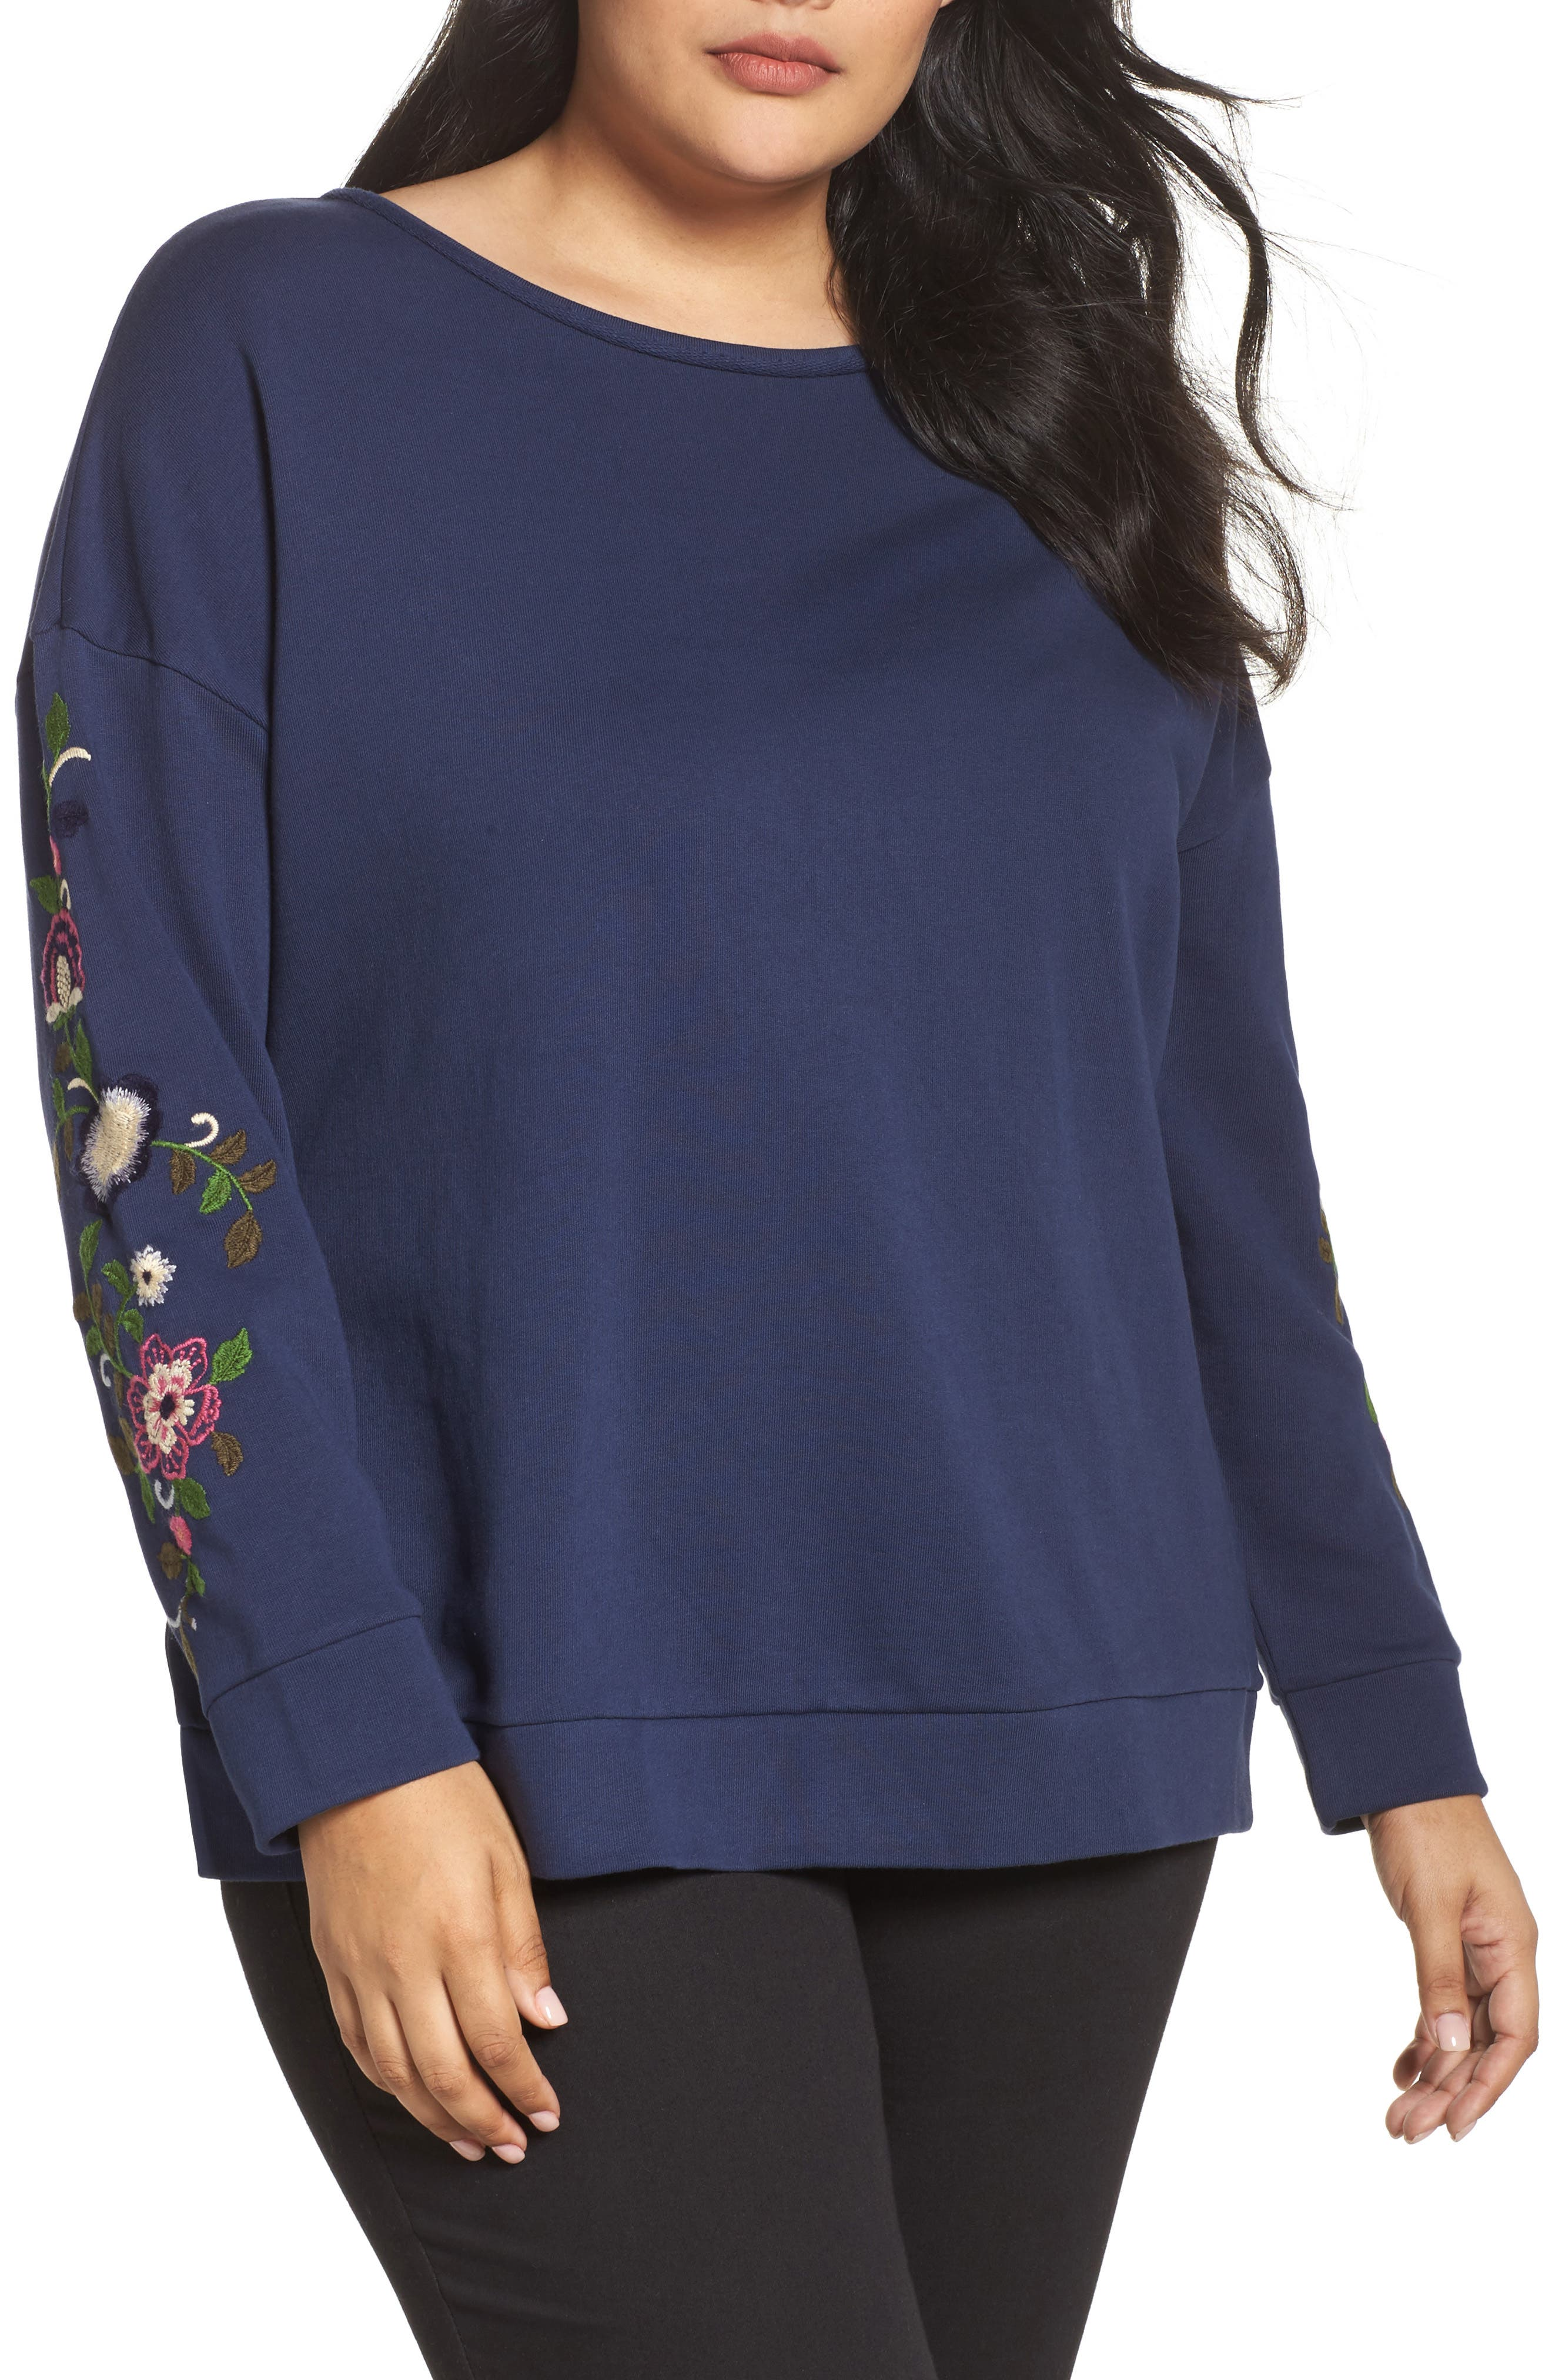 Embroidered Sleeve Sweatshirt,                             Main thumbnail 1, color,                             Navy- Rose Floral